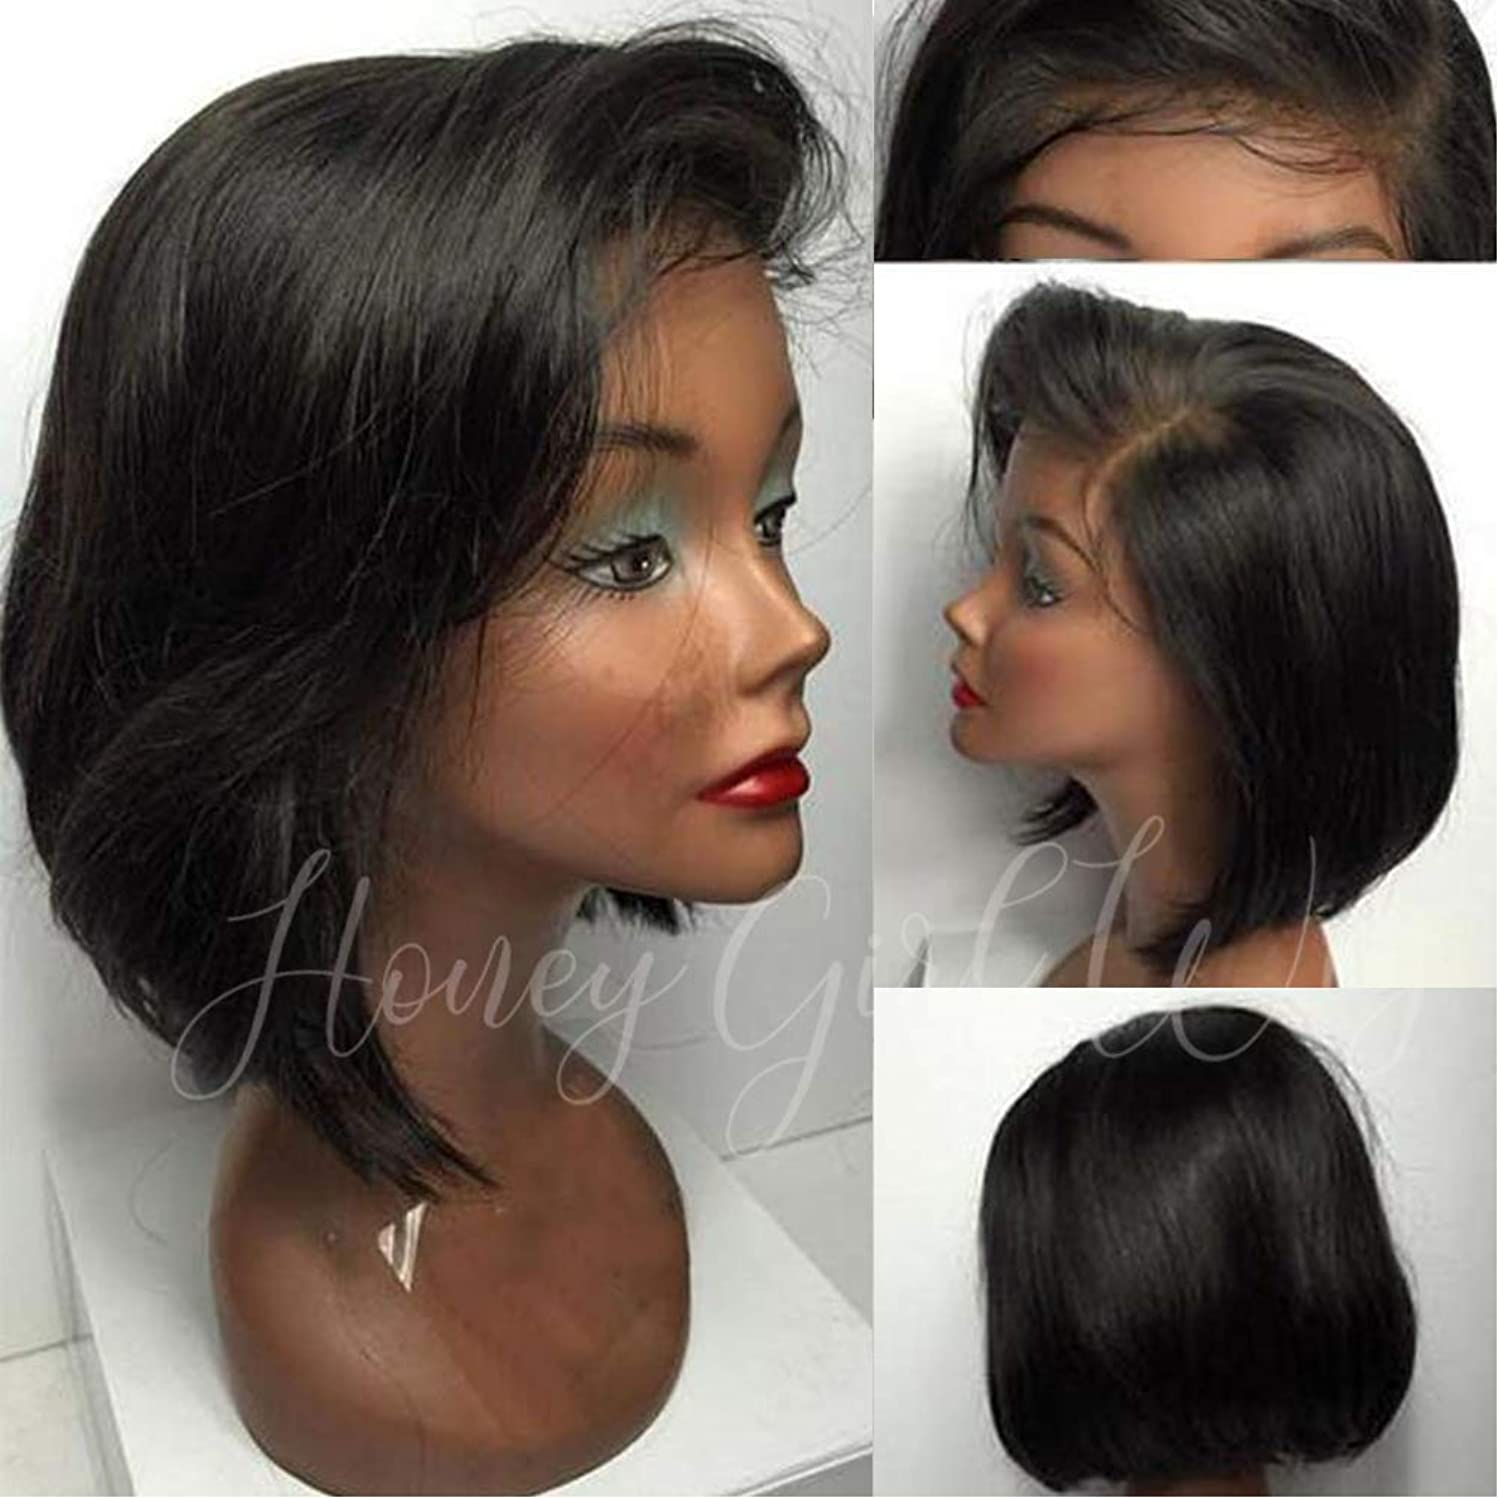 Glueless Full Lace Wigs Human Hair Pre Plucked 9A Brazilian Human Hair Wigs 150% Density Full Lace Human Hair Wigs Pre Plucked Bleached Knots Bob Wig Human Hair Full Lace Wig Human Hair Short Bob 14